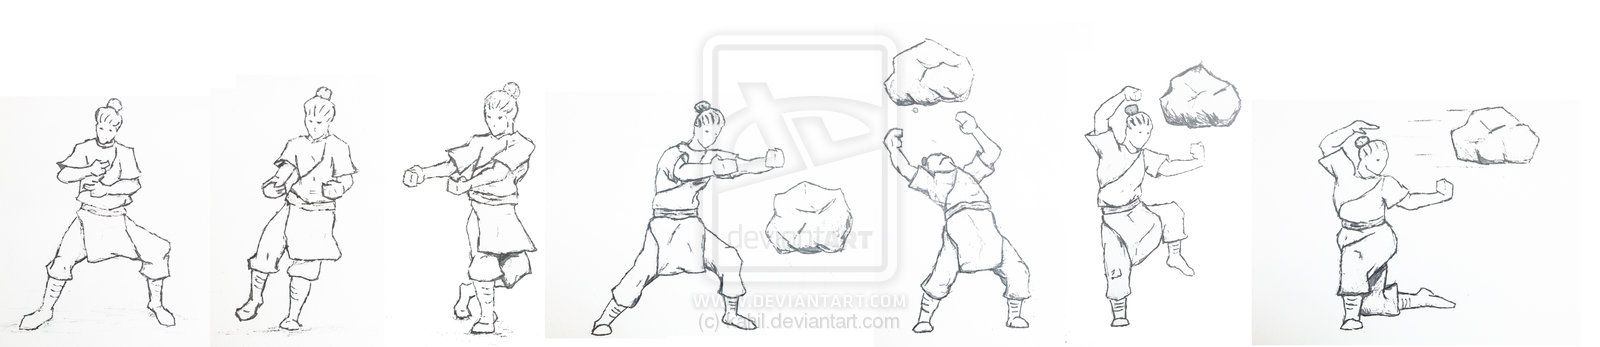 Earthbending Poses Avatar The Last Airbender Sketching Tips The Last Airbender Understanding the bending art requires an understanding of the basics. earthbending poses avatar the last